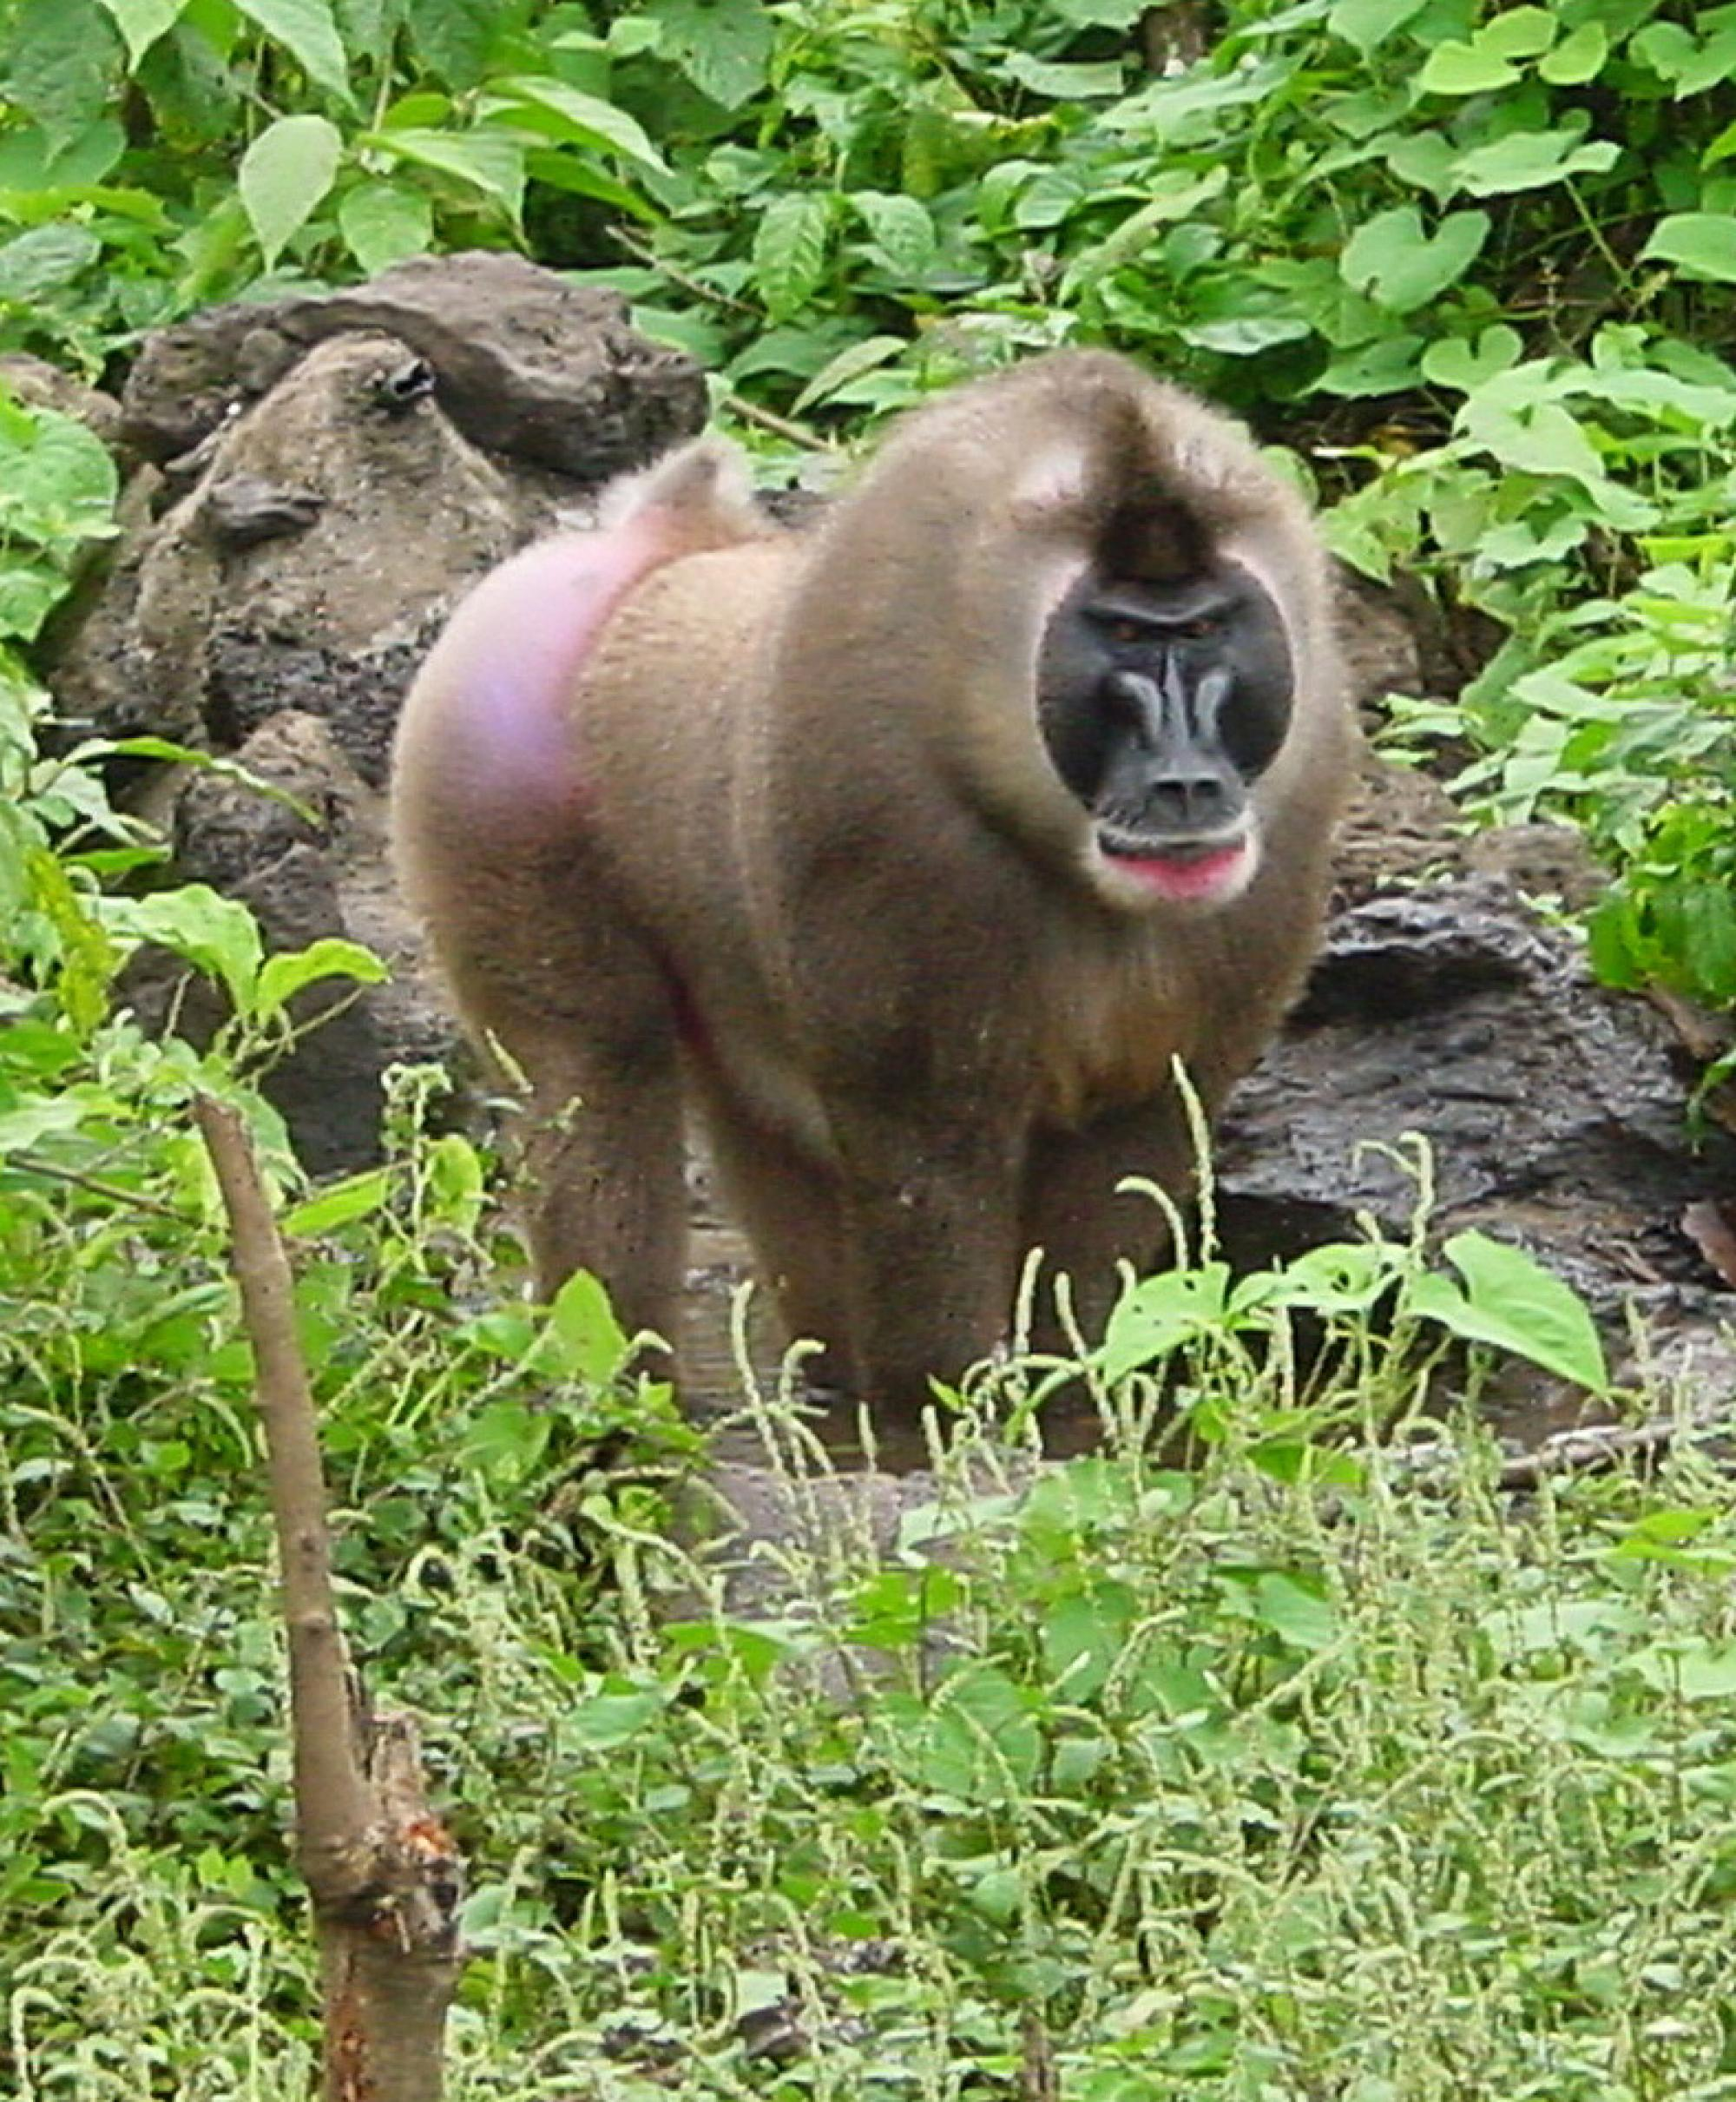 Island-specific strains of the simian immunodeficiency virus, which infects monkeys such as the Bioko Drill, revealed the virus has been around thousands of years longer than previously thought.